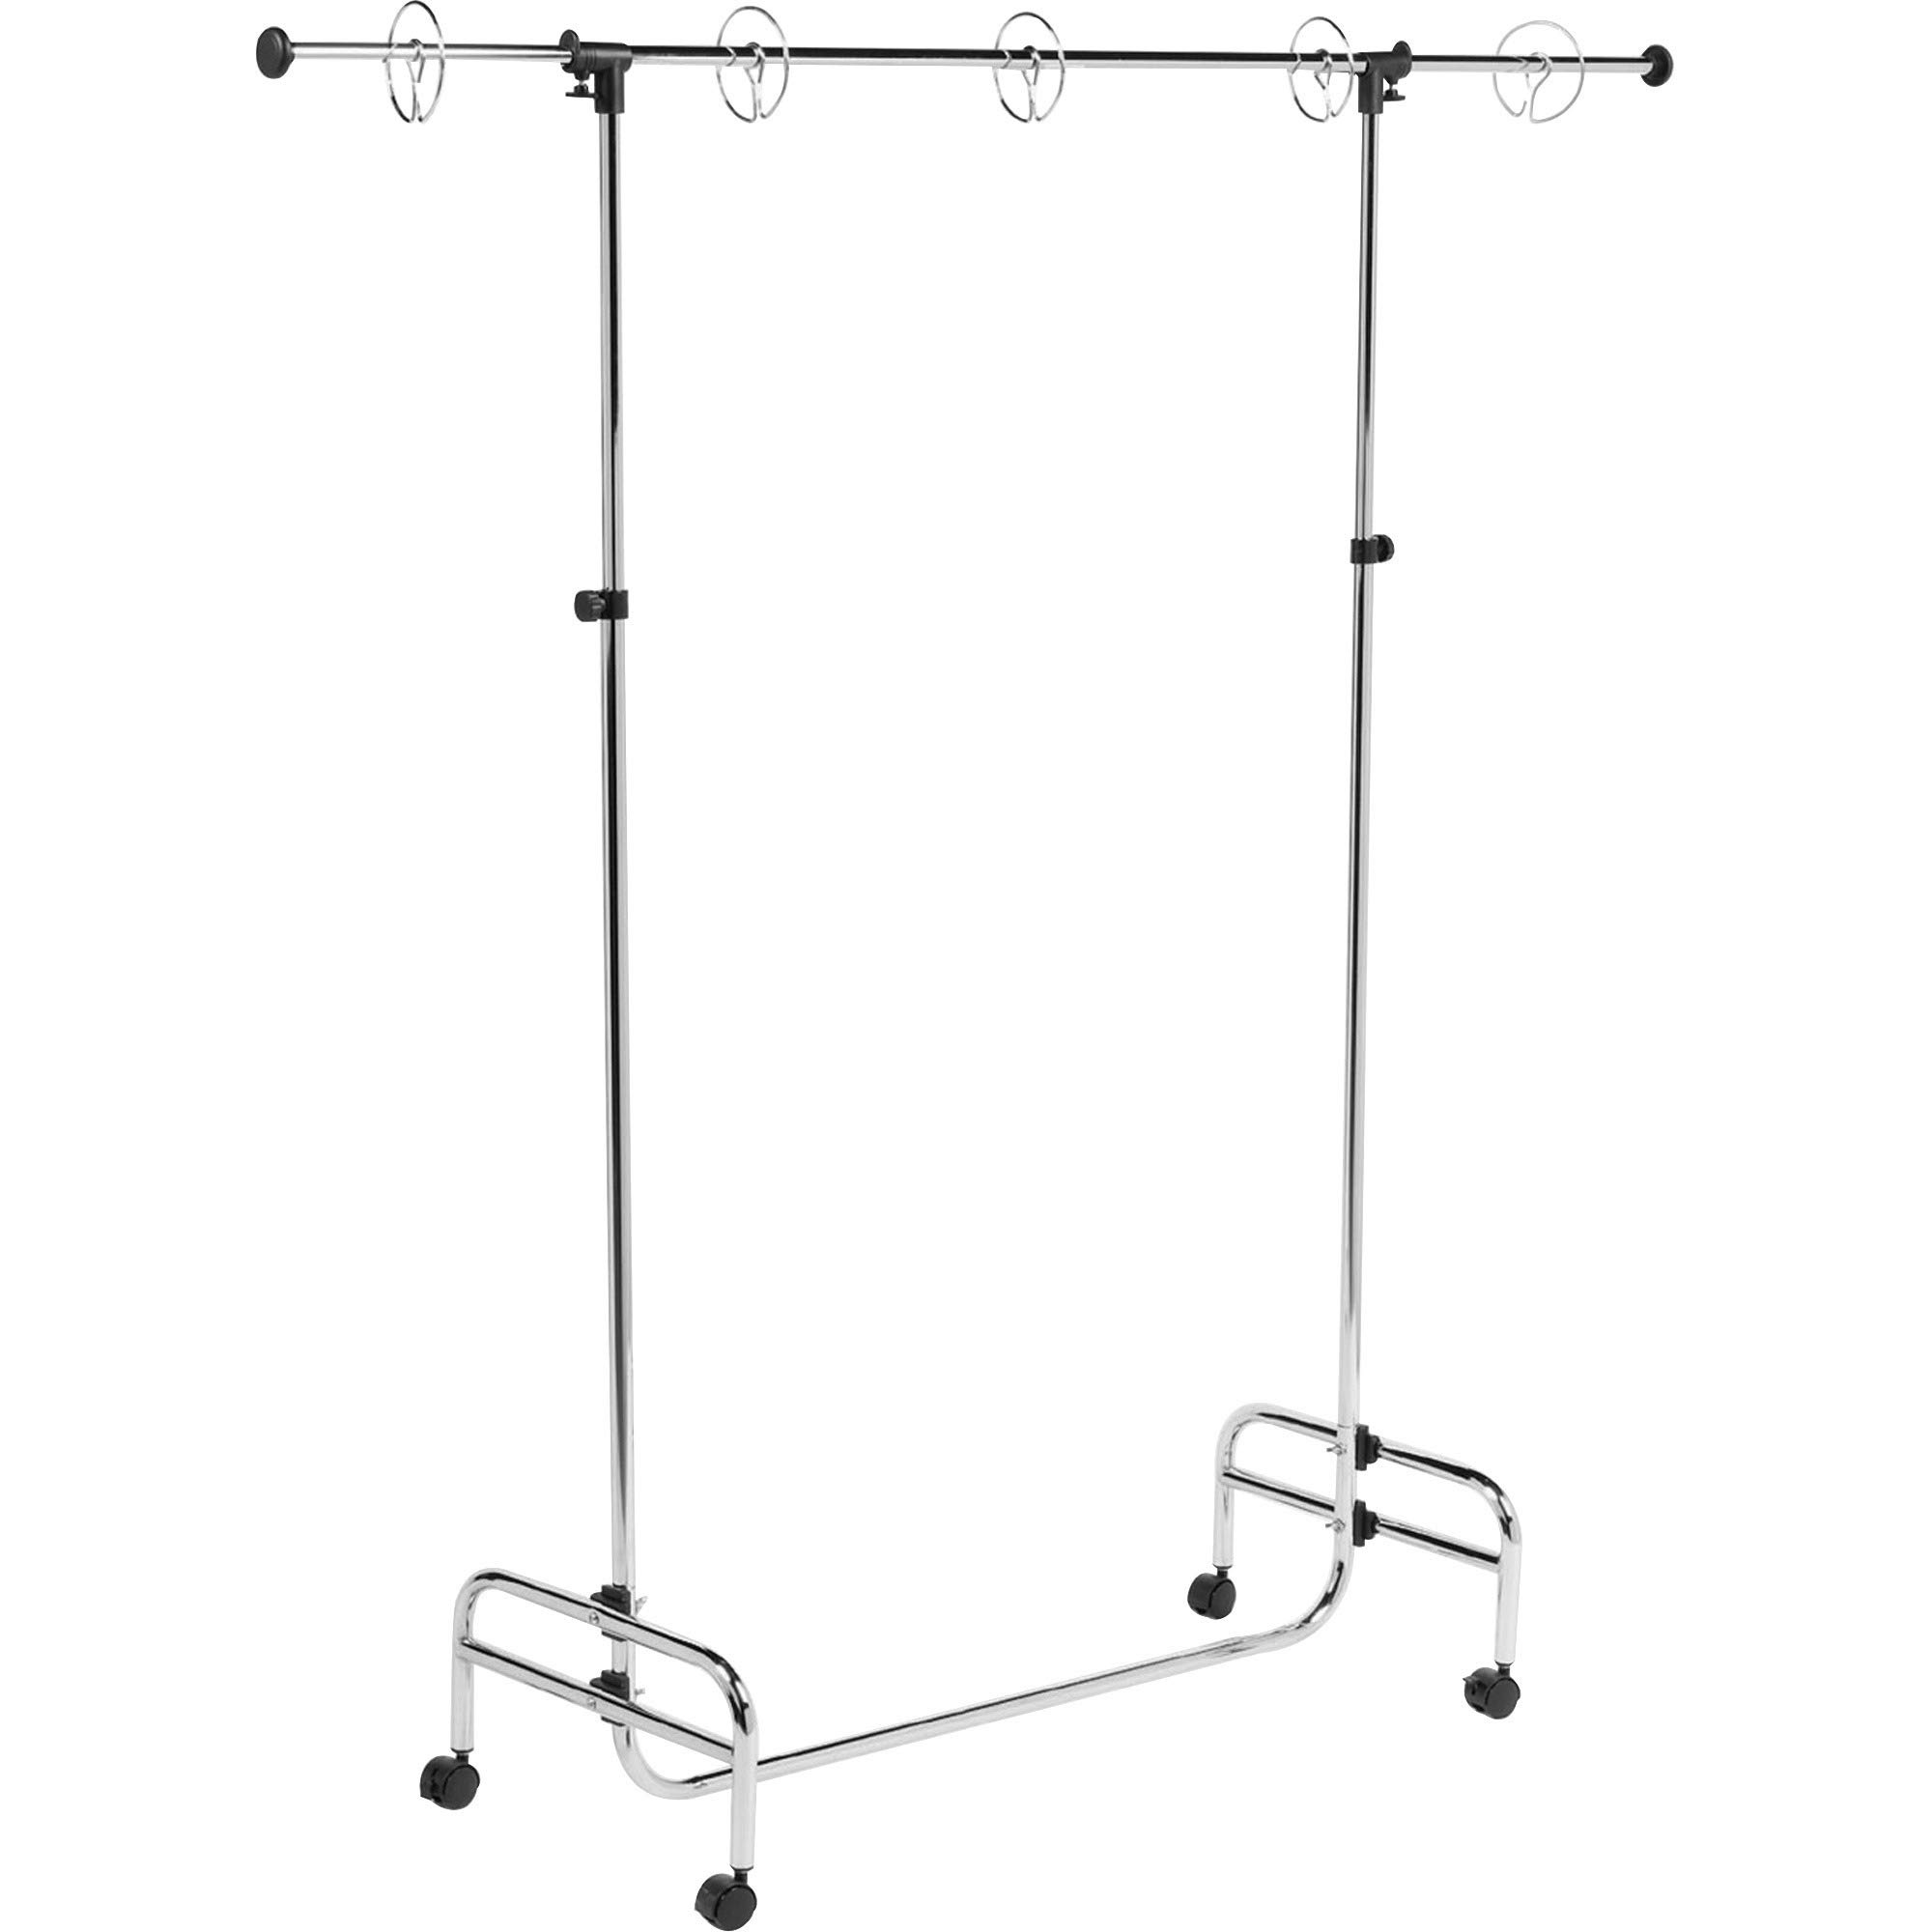 PAC20990 - Pacon Display Stand